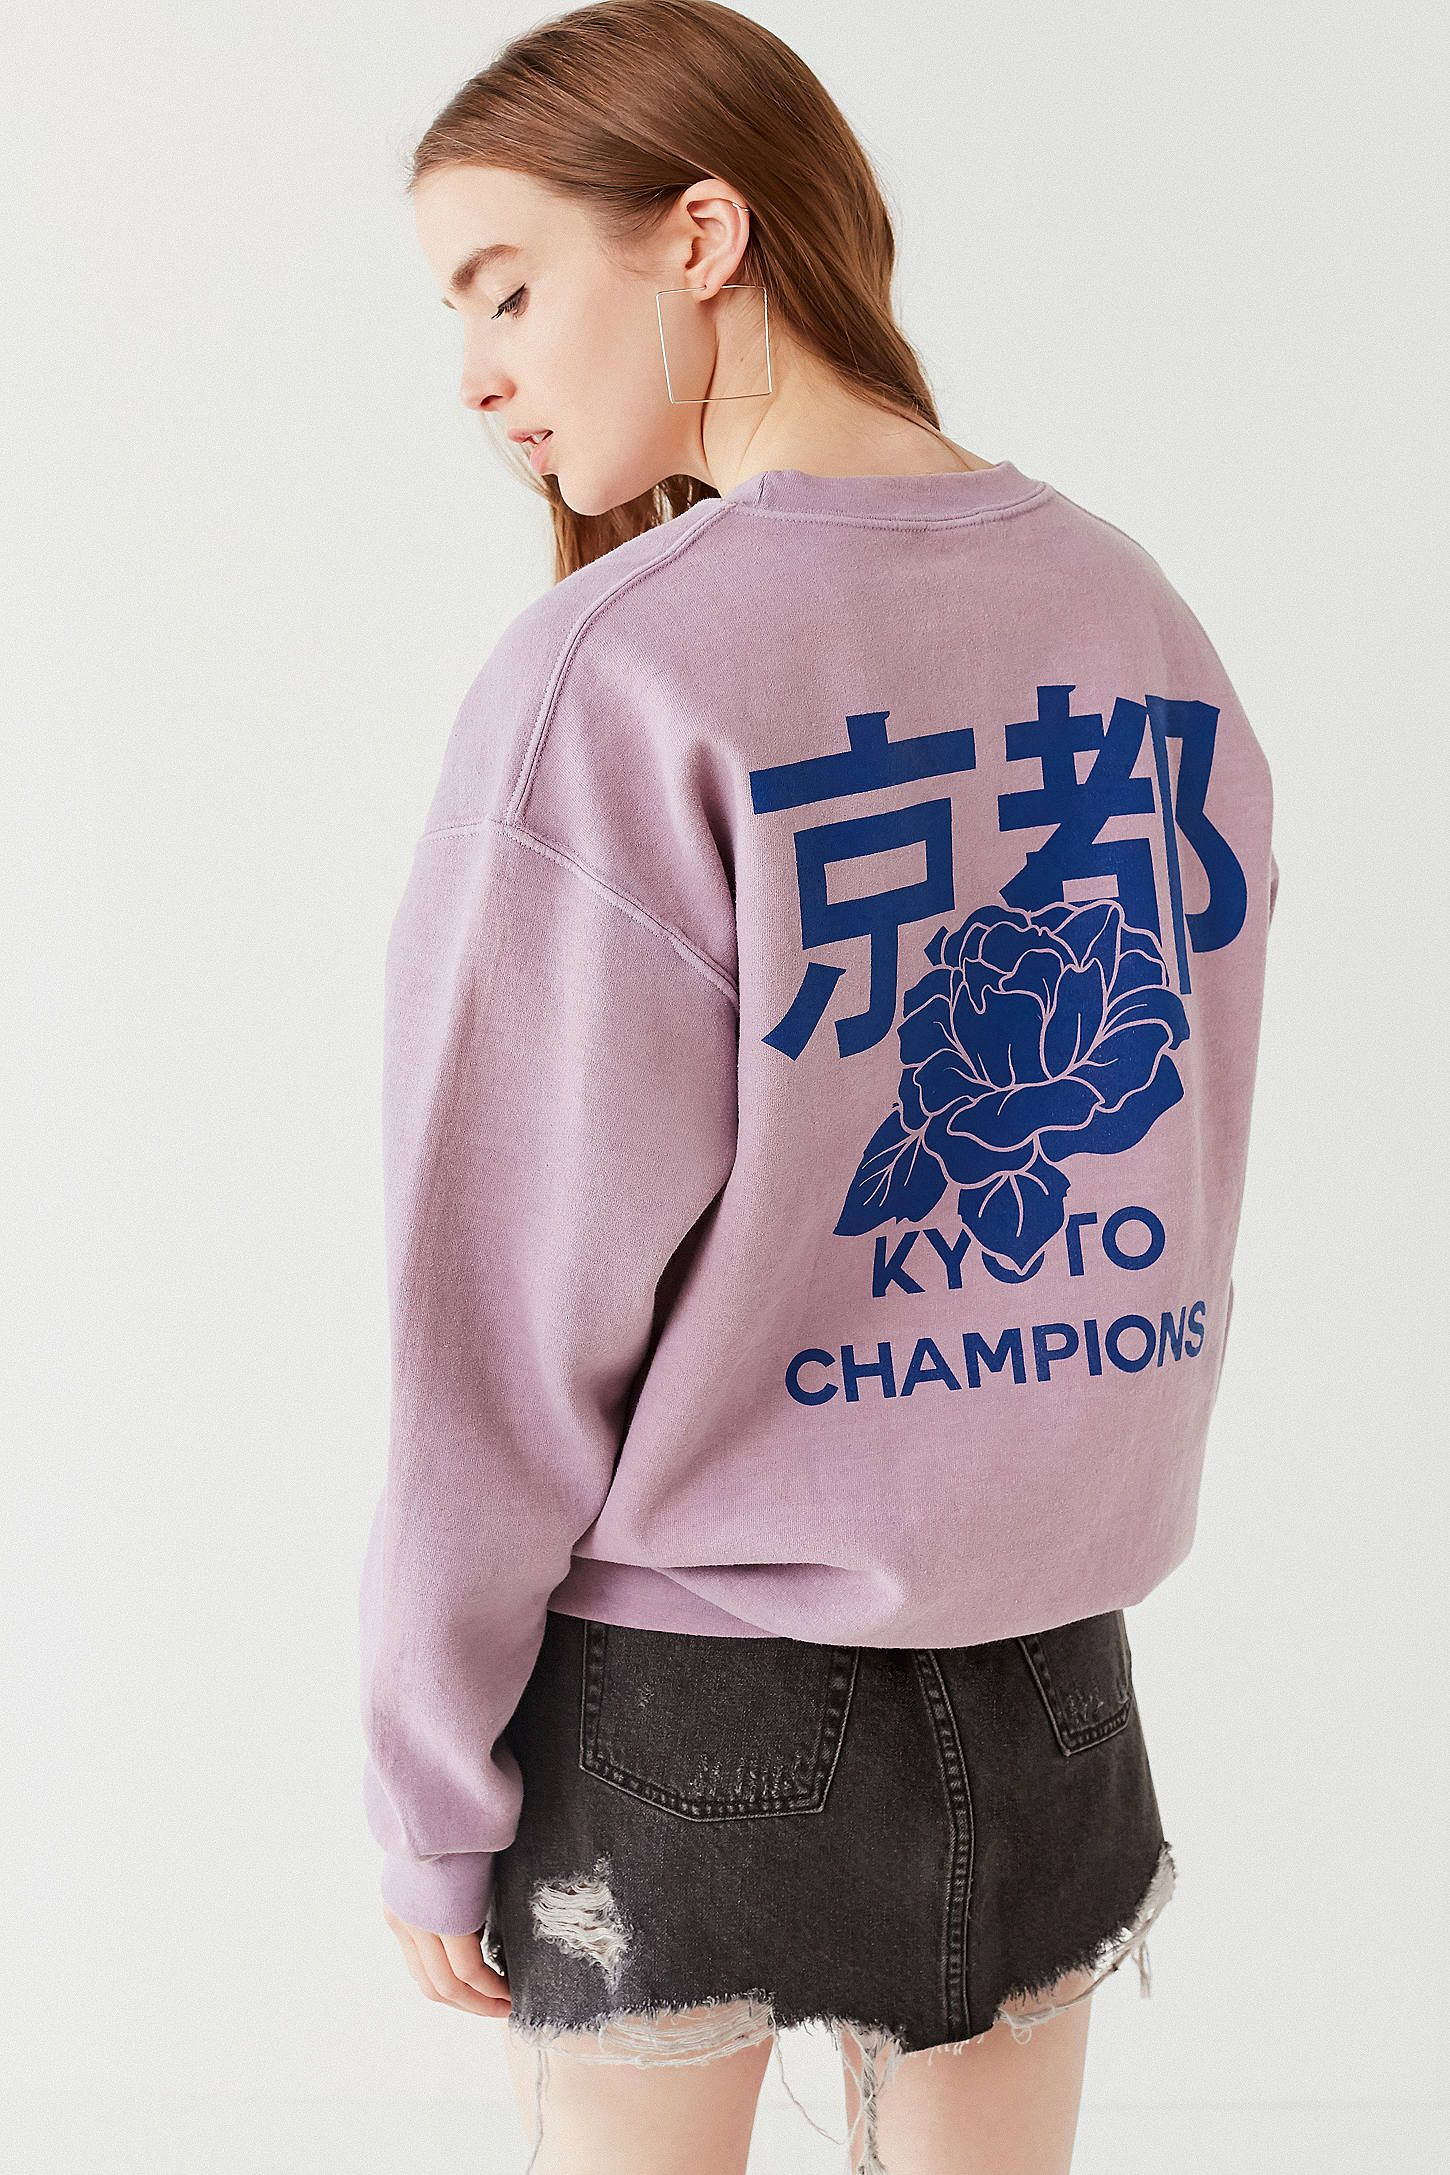 d91b3bcc Shop Kyoto Champions Overdyed Sweatshirt at Urban Outfitters today. We  carry all the latest styles, colors and brands for you to choose from right  here.